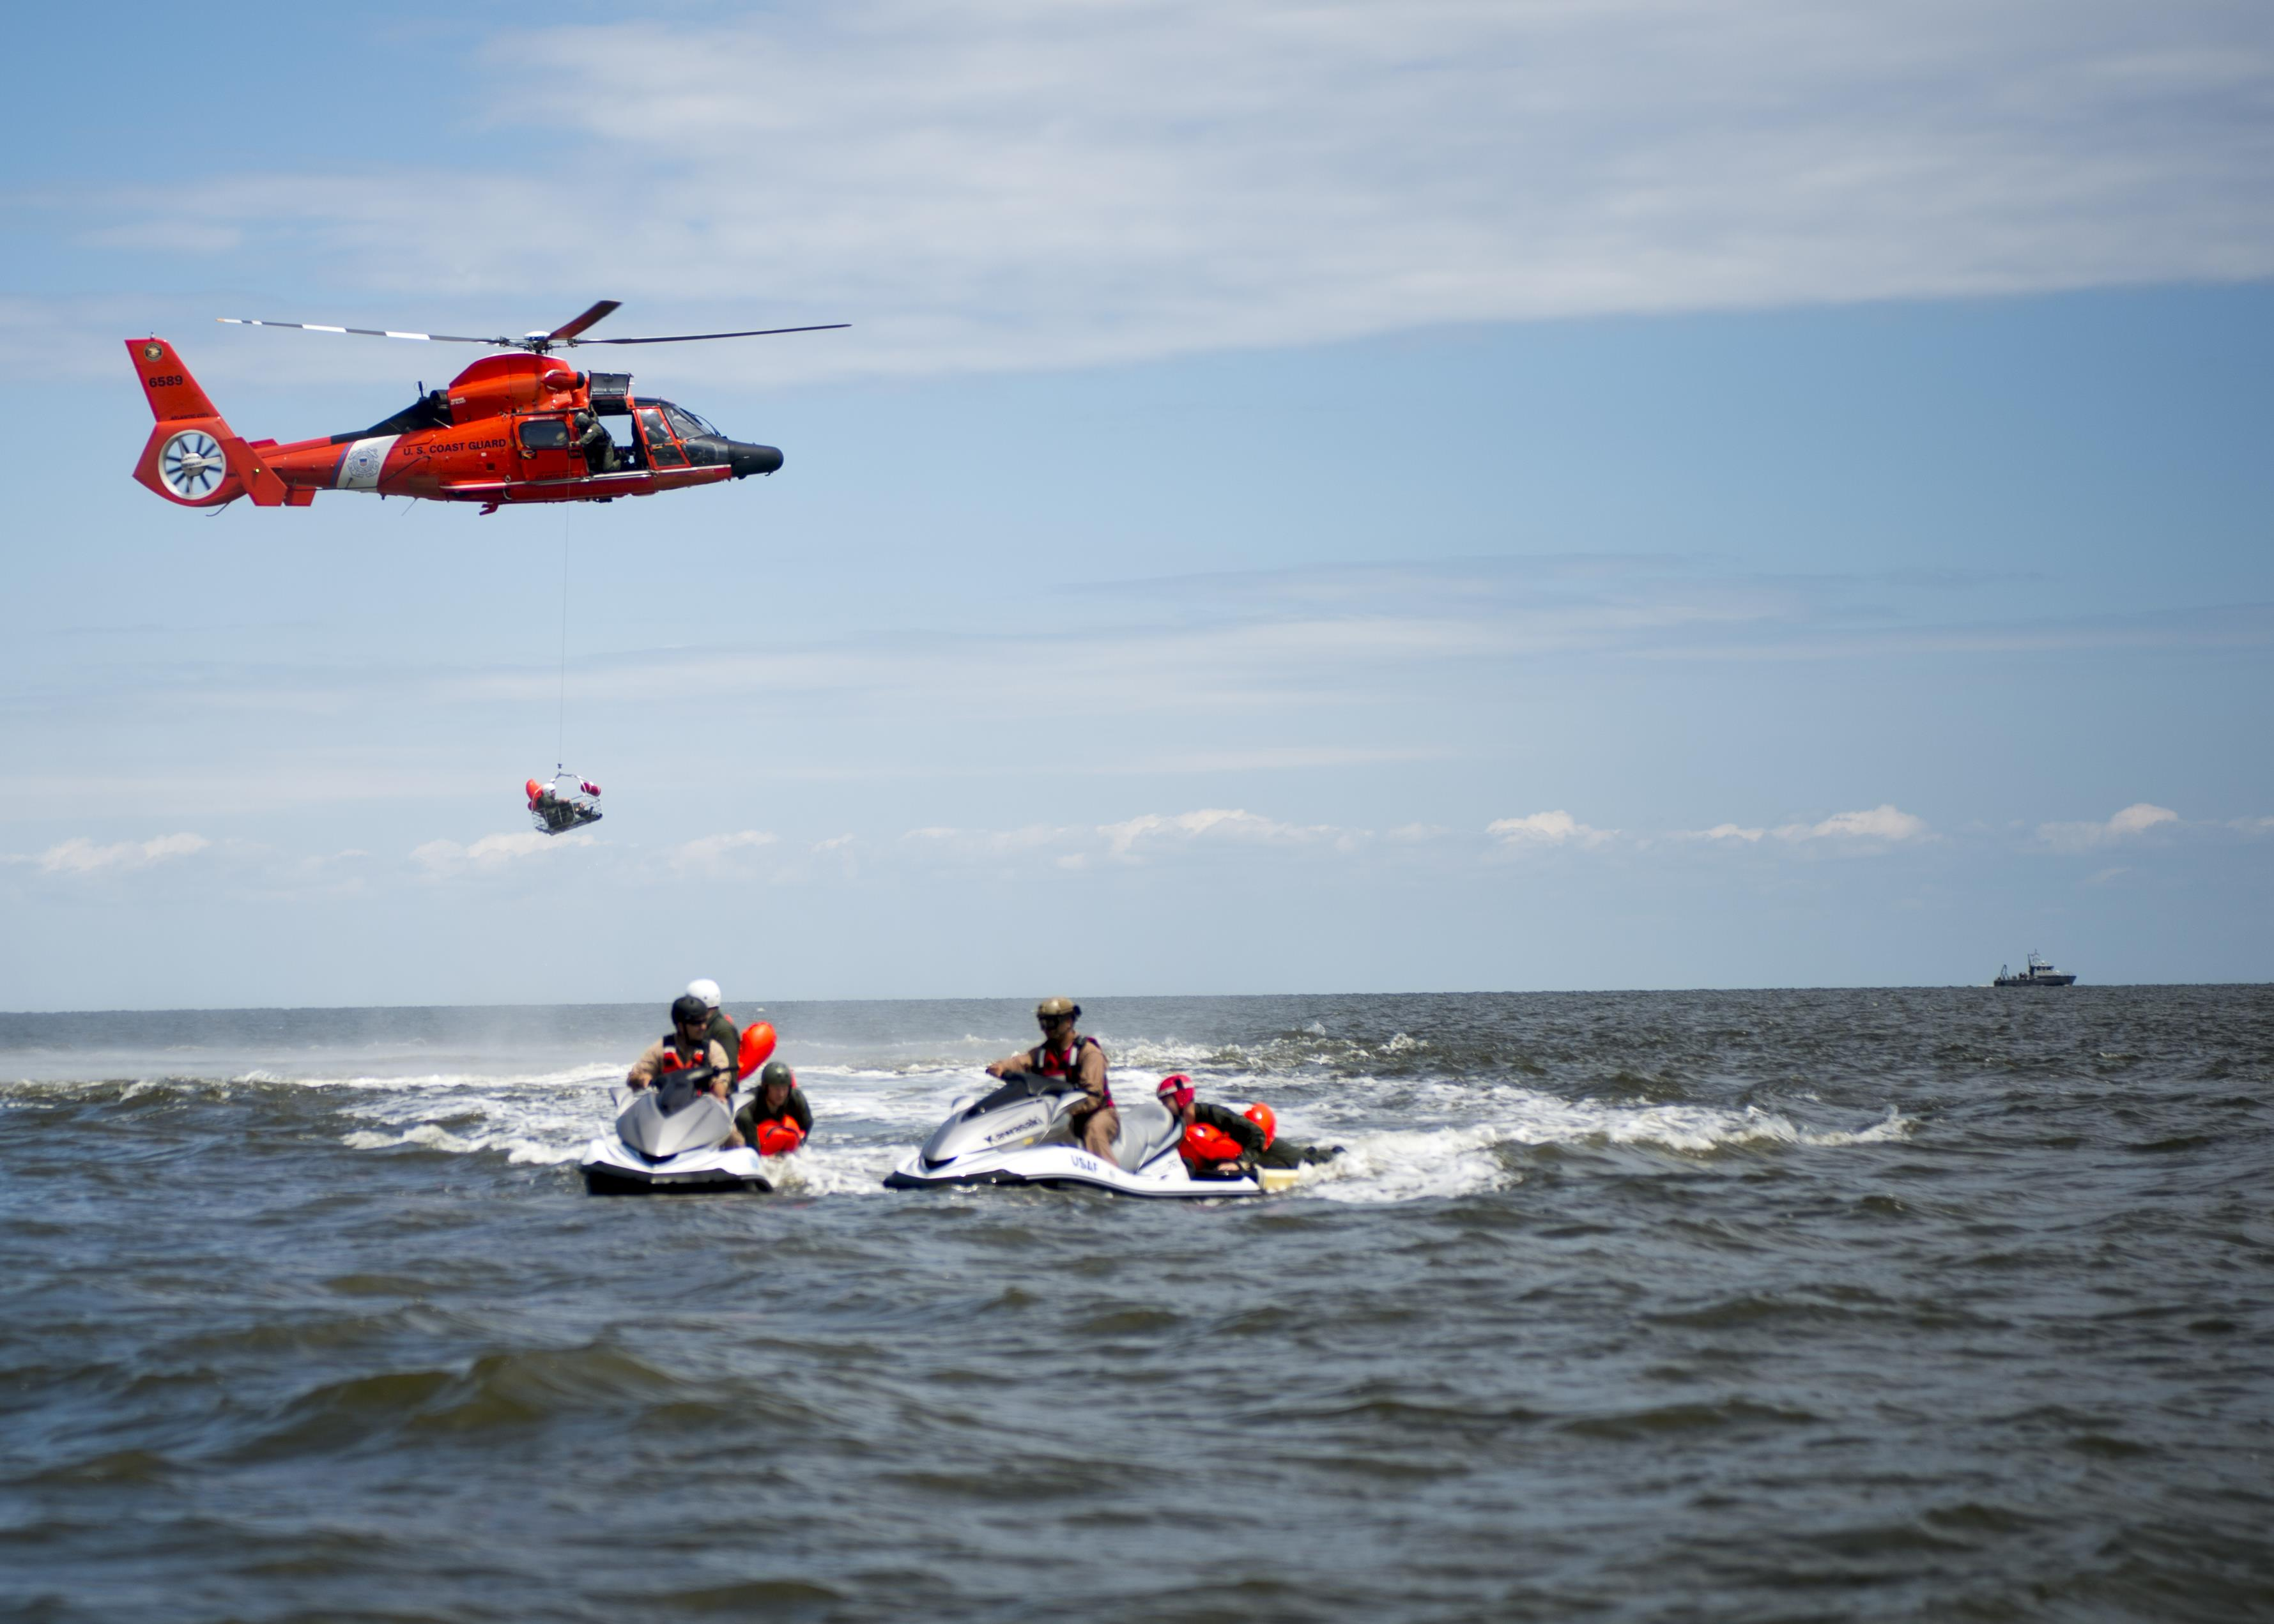 Dover Reserve wing trains with Coast Guard > Air Force Reserve ... on ah-64 apache, uh-72a, ch-53e super stallion, eurocopter ec 135, eurocopter ec145, united states coast guard, eurocopter ec 155, agustawestland aw139, bell eagle eye, lockheed hc-130, sikorsky s-76, eurocopter x3, sikorsky hh-60 jayhawk, eurocopter dauphin, hh-60 pave hawk, agusta a109, kc-135 stratotanker, ch-47 chinook, uh-1 iroquois,